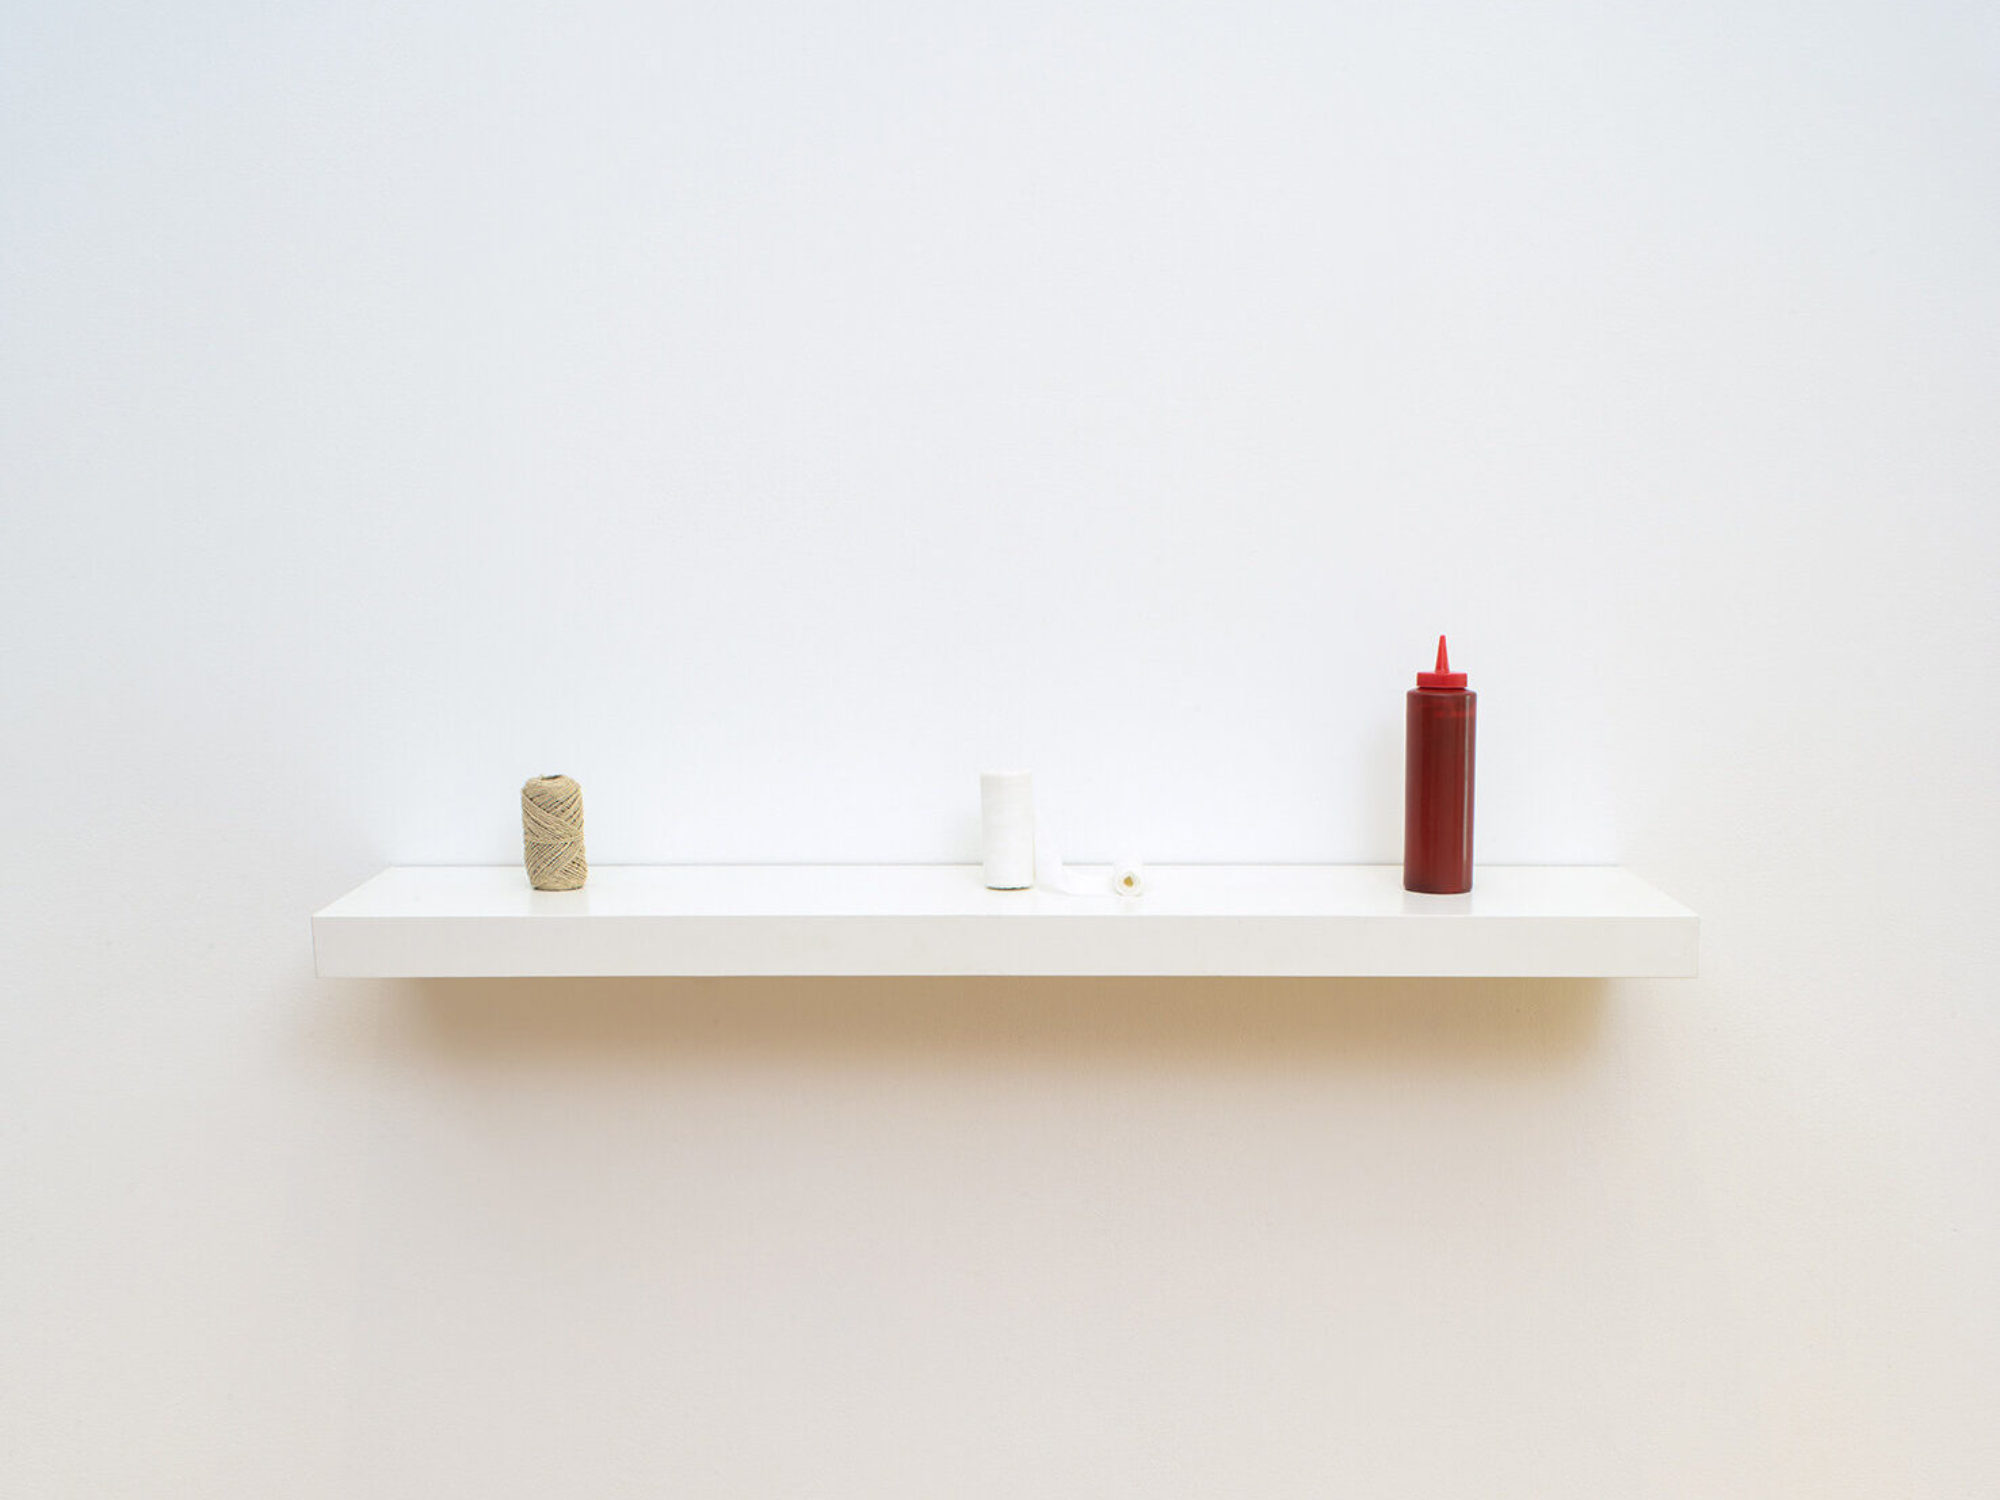 A roll of twine, roll of white bandages, and a red bottle of ketchup sit on a white shelf in gallery